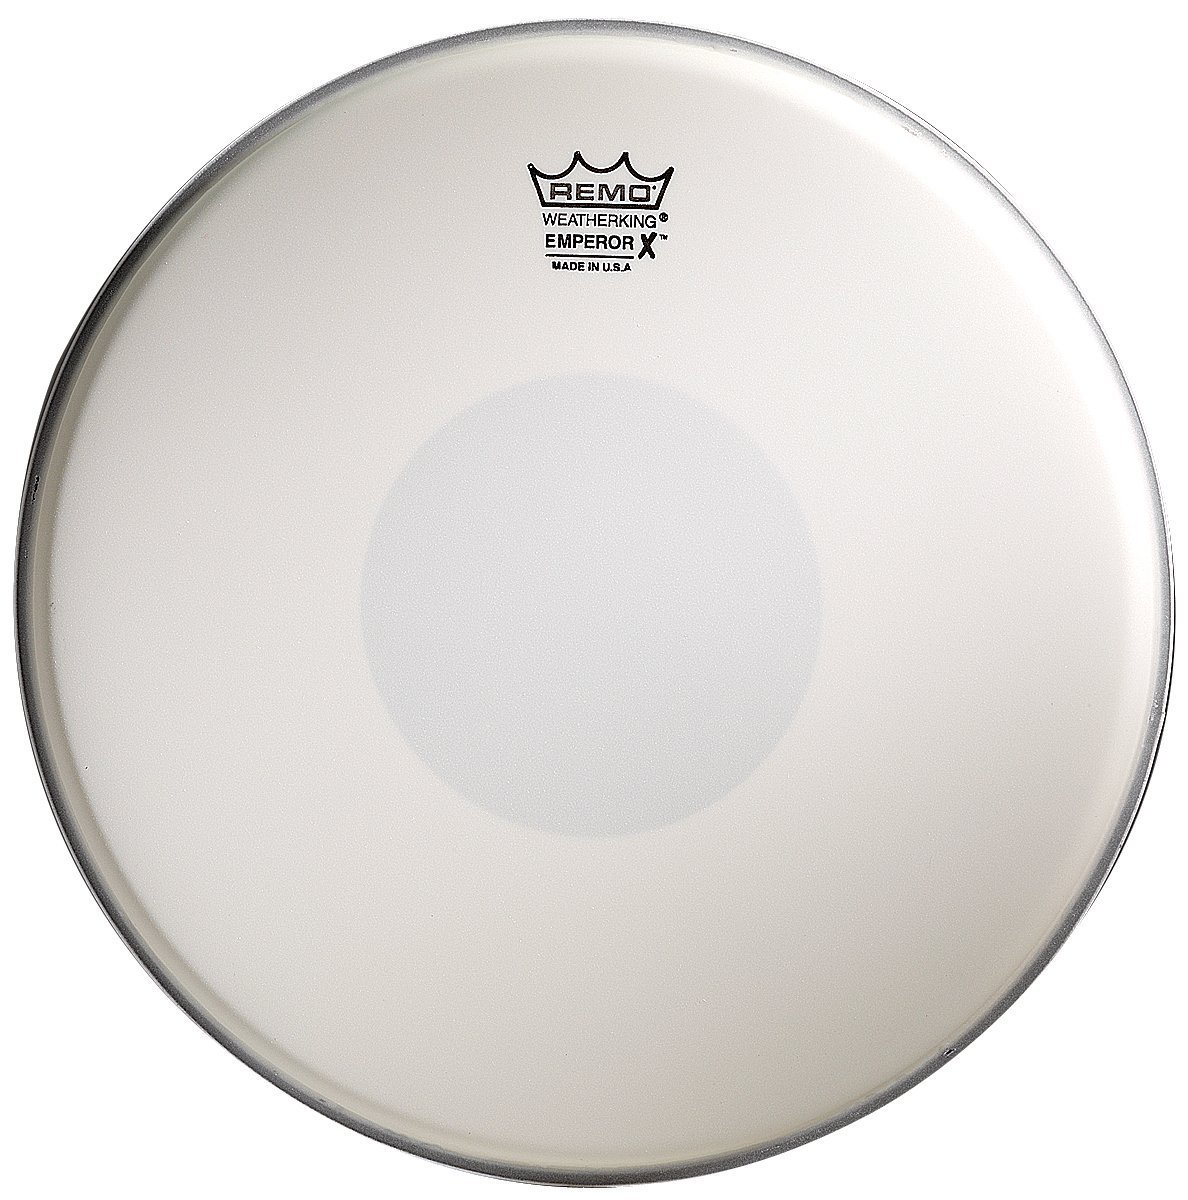 remo emperor x coated snare drum head 14 inch free shipping 692756722239 ebay. Black Bedroom Furniture Sets. Home Design Ideas